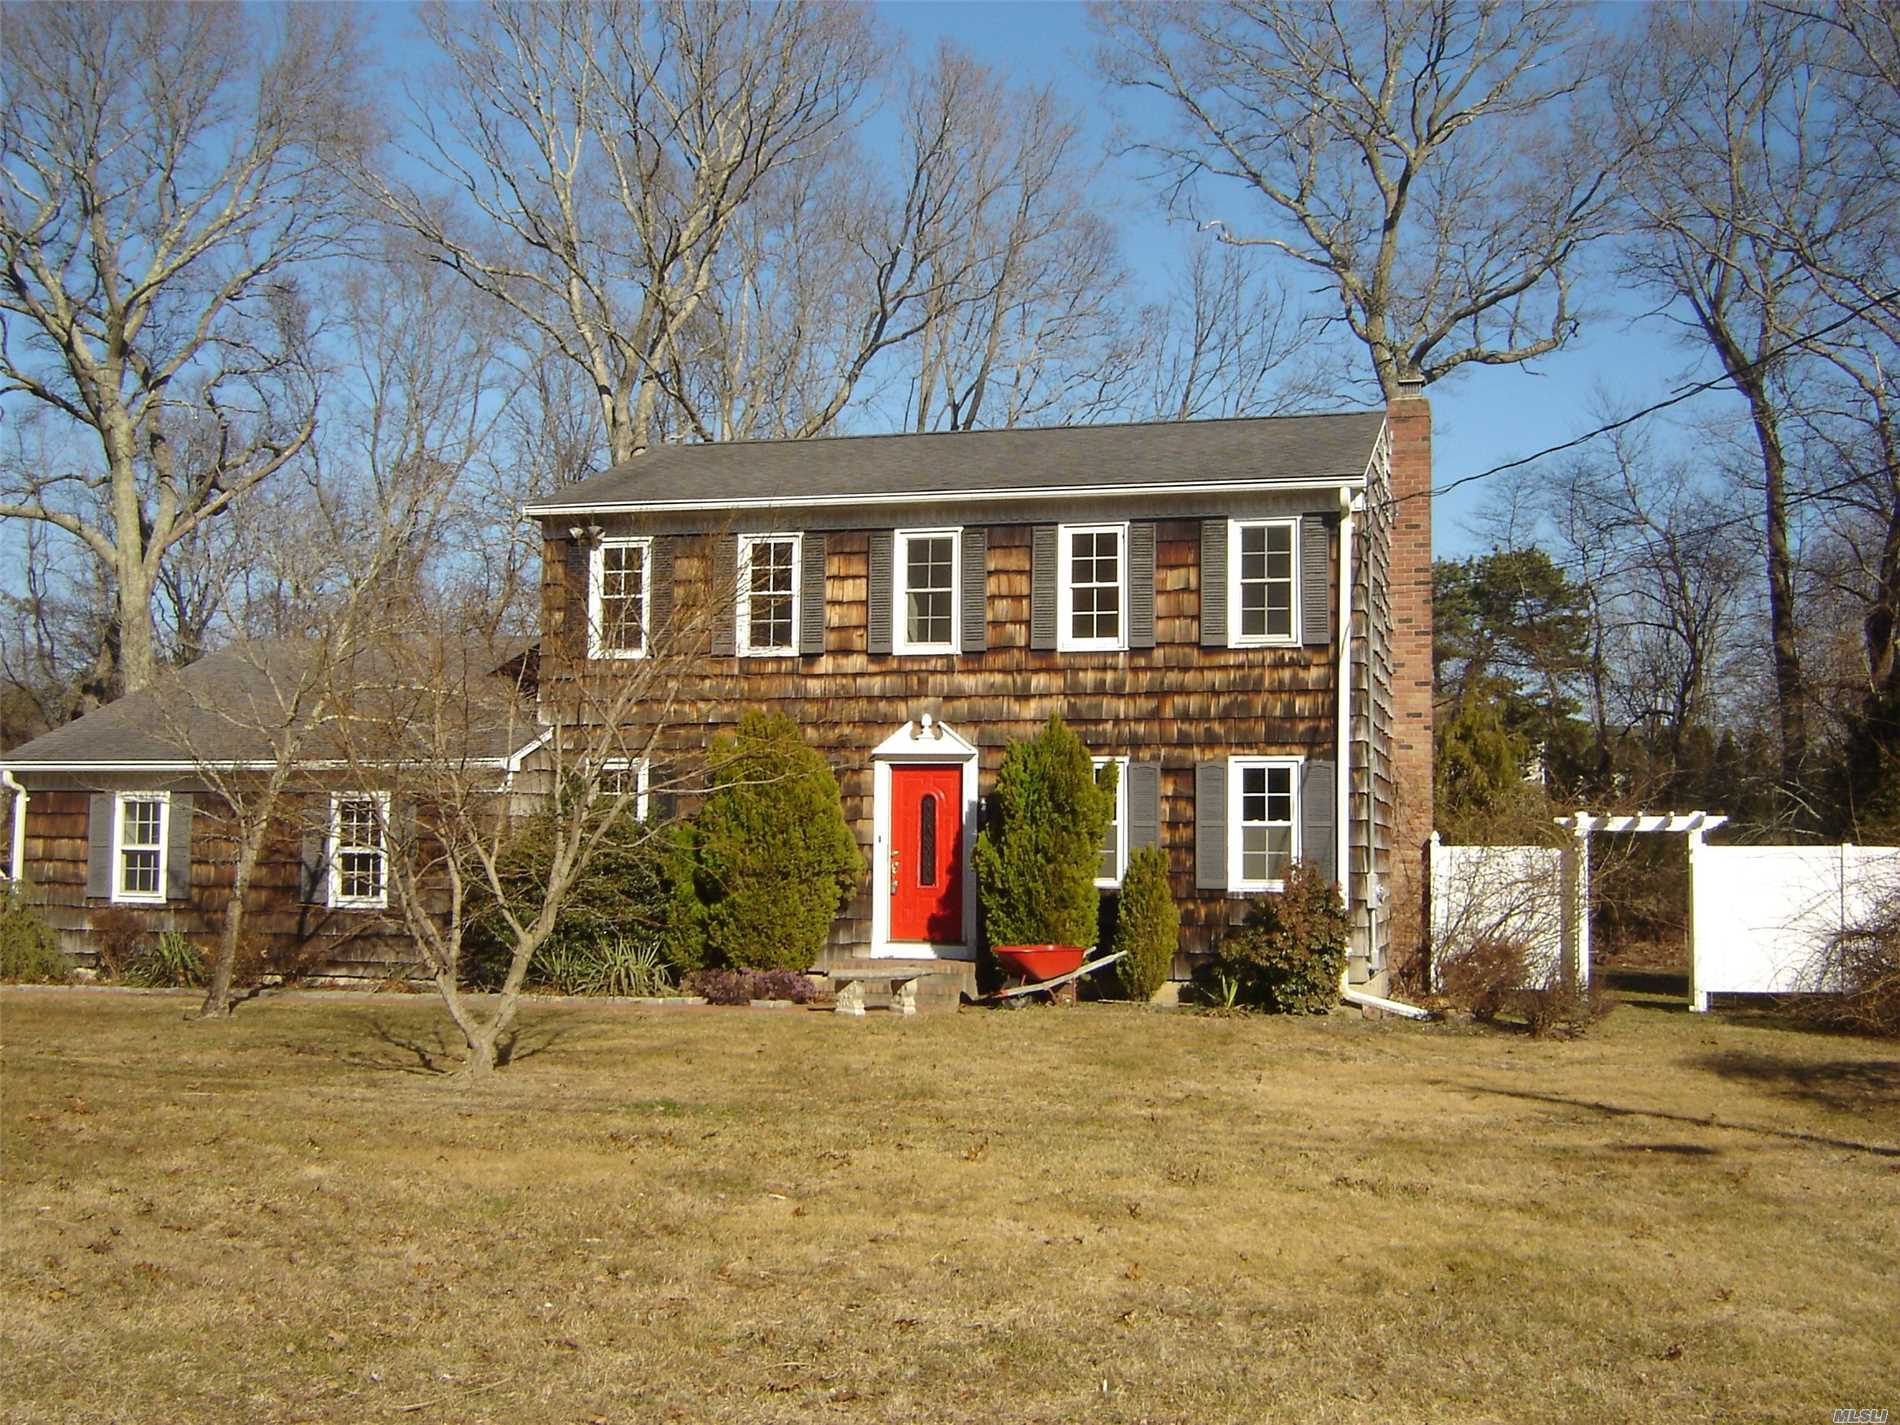 Nicely Kept Colonial In Desirable Wooded Development. Shoreham-Wading River Schools, Hardwood Floors, Updated Kitchen, Freshly Painted Interior, Den W/Wood Burning Stove, Finished Basement W/Playroom And Separate Office Or Study Room. Large Private Yard With Paver Patio And In-Ground Sprinklers.Cedar Shakes On Entire Exterior. Newer 30 Year Architectural Roof.